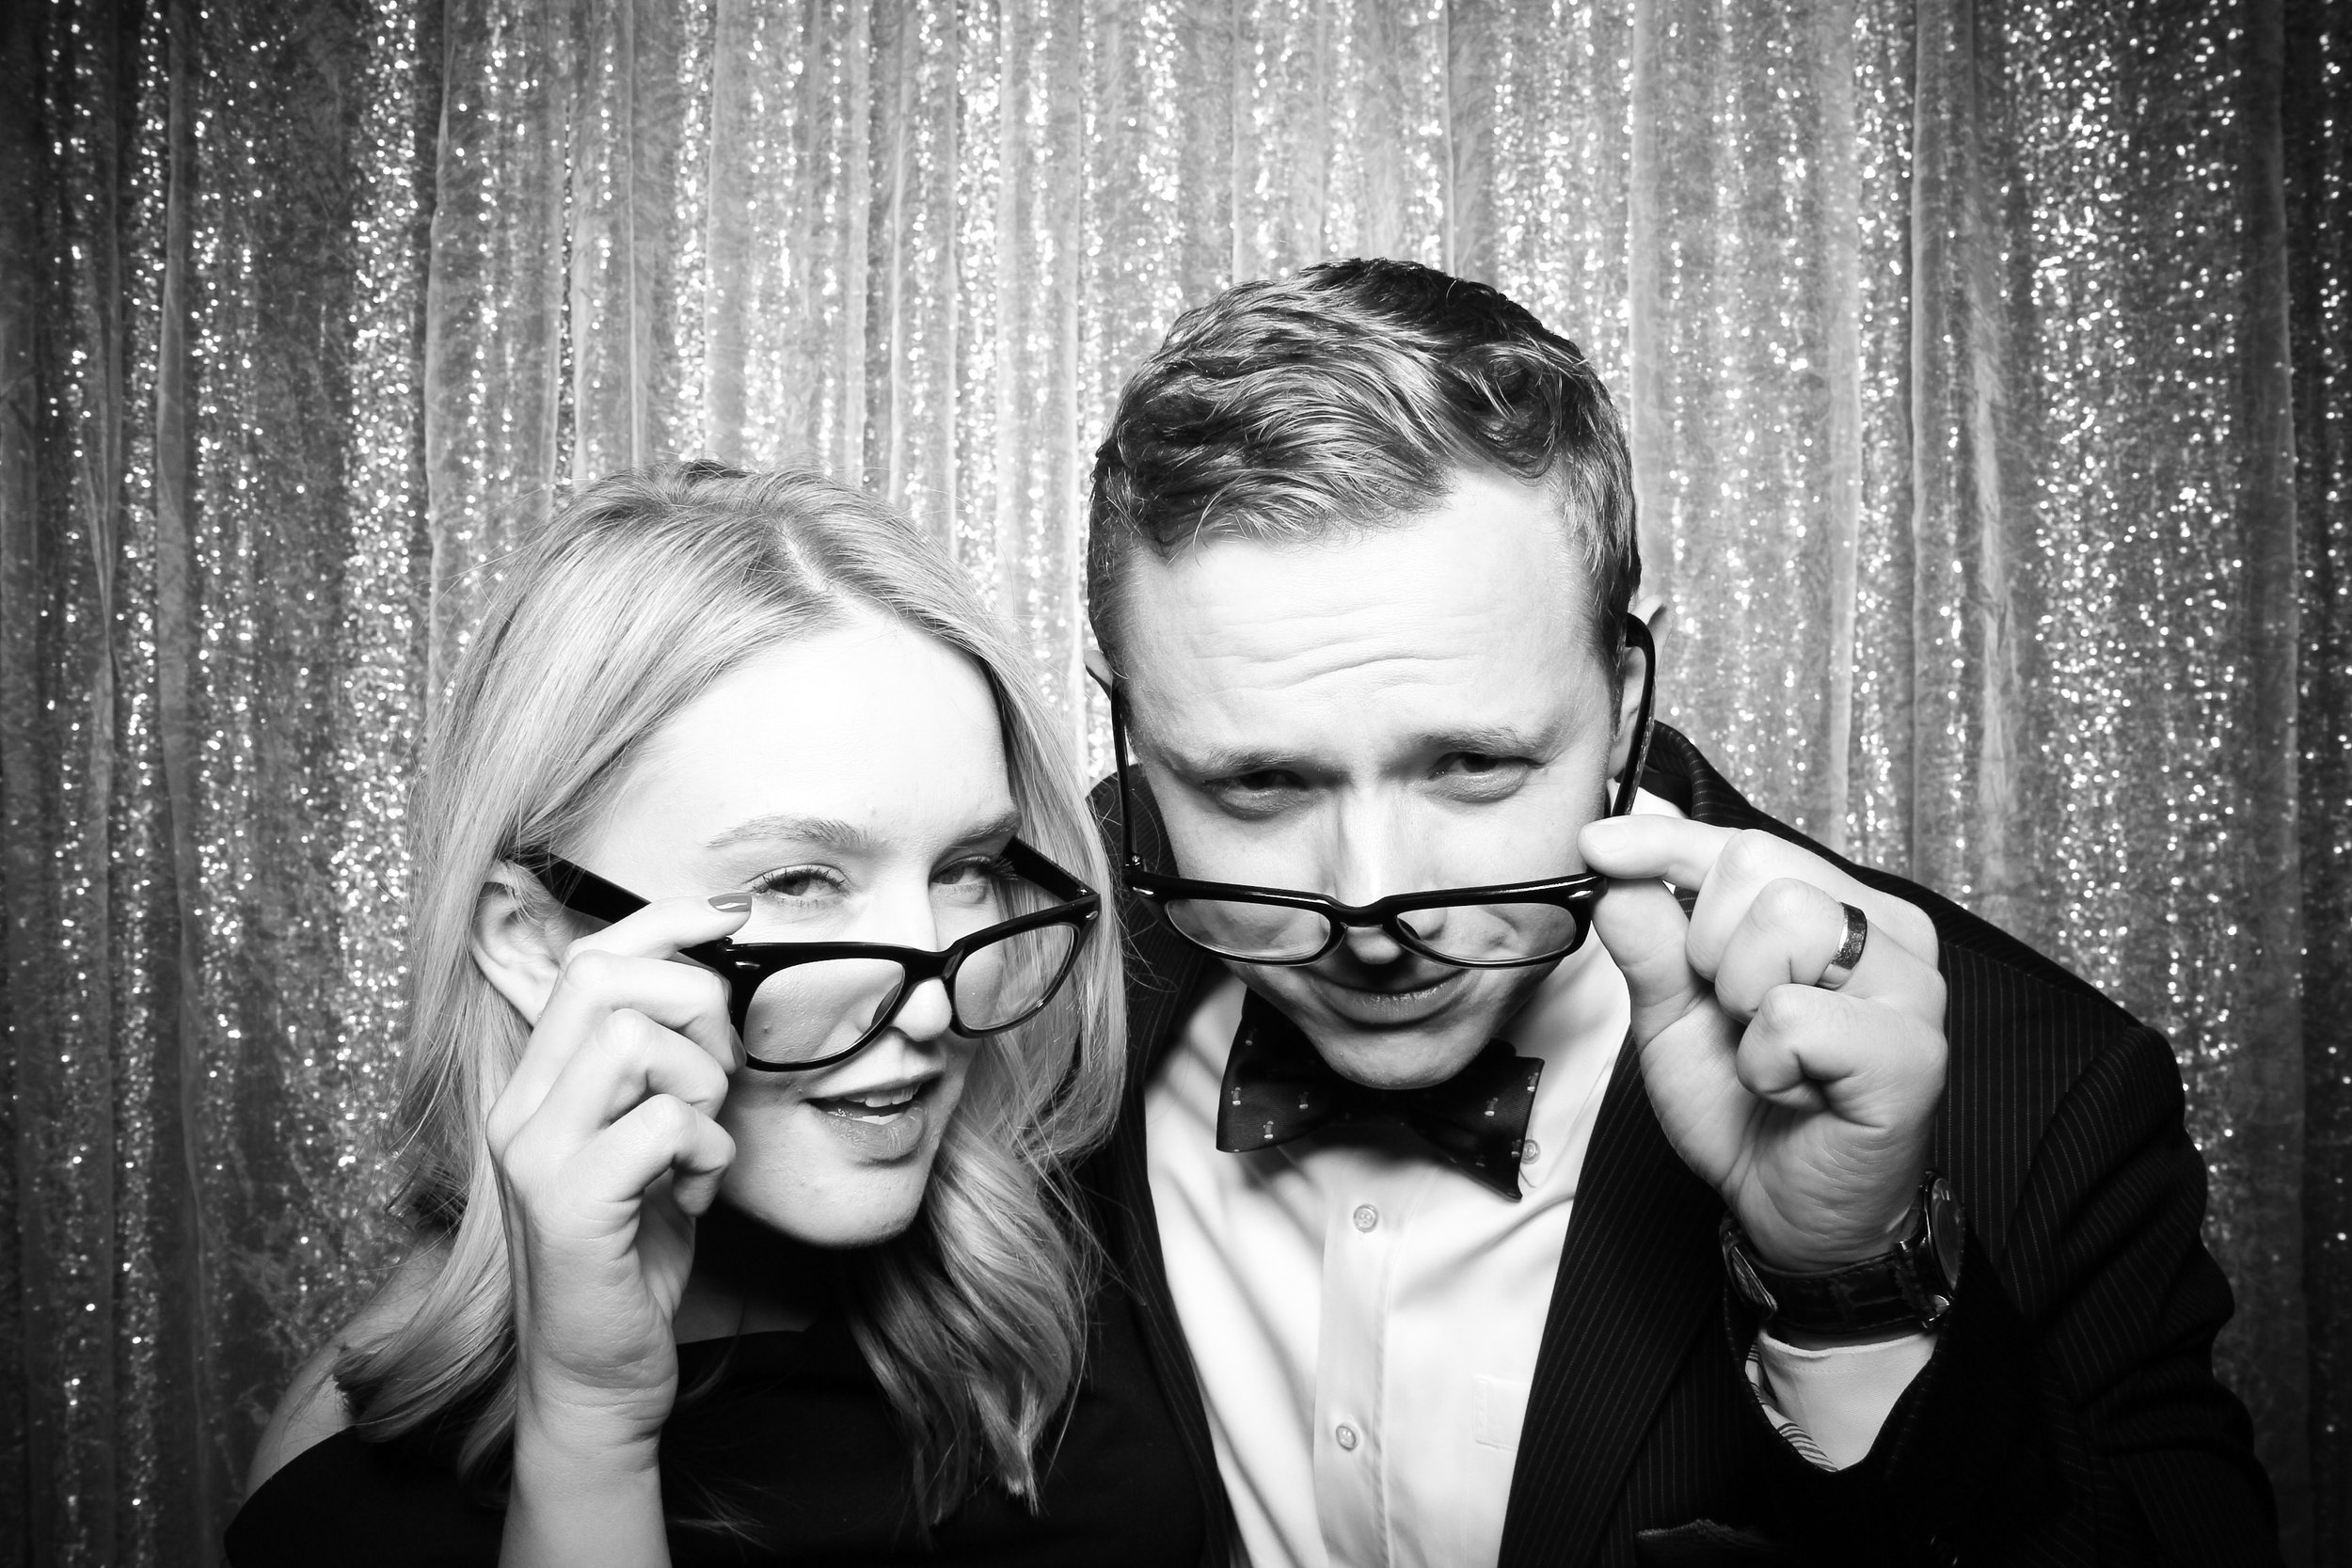 Chicago_Vintage_Photobooth_Montgomery_Club_Holiday_Party_16.jpg